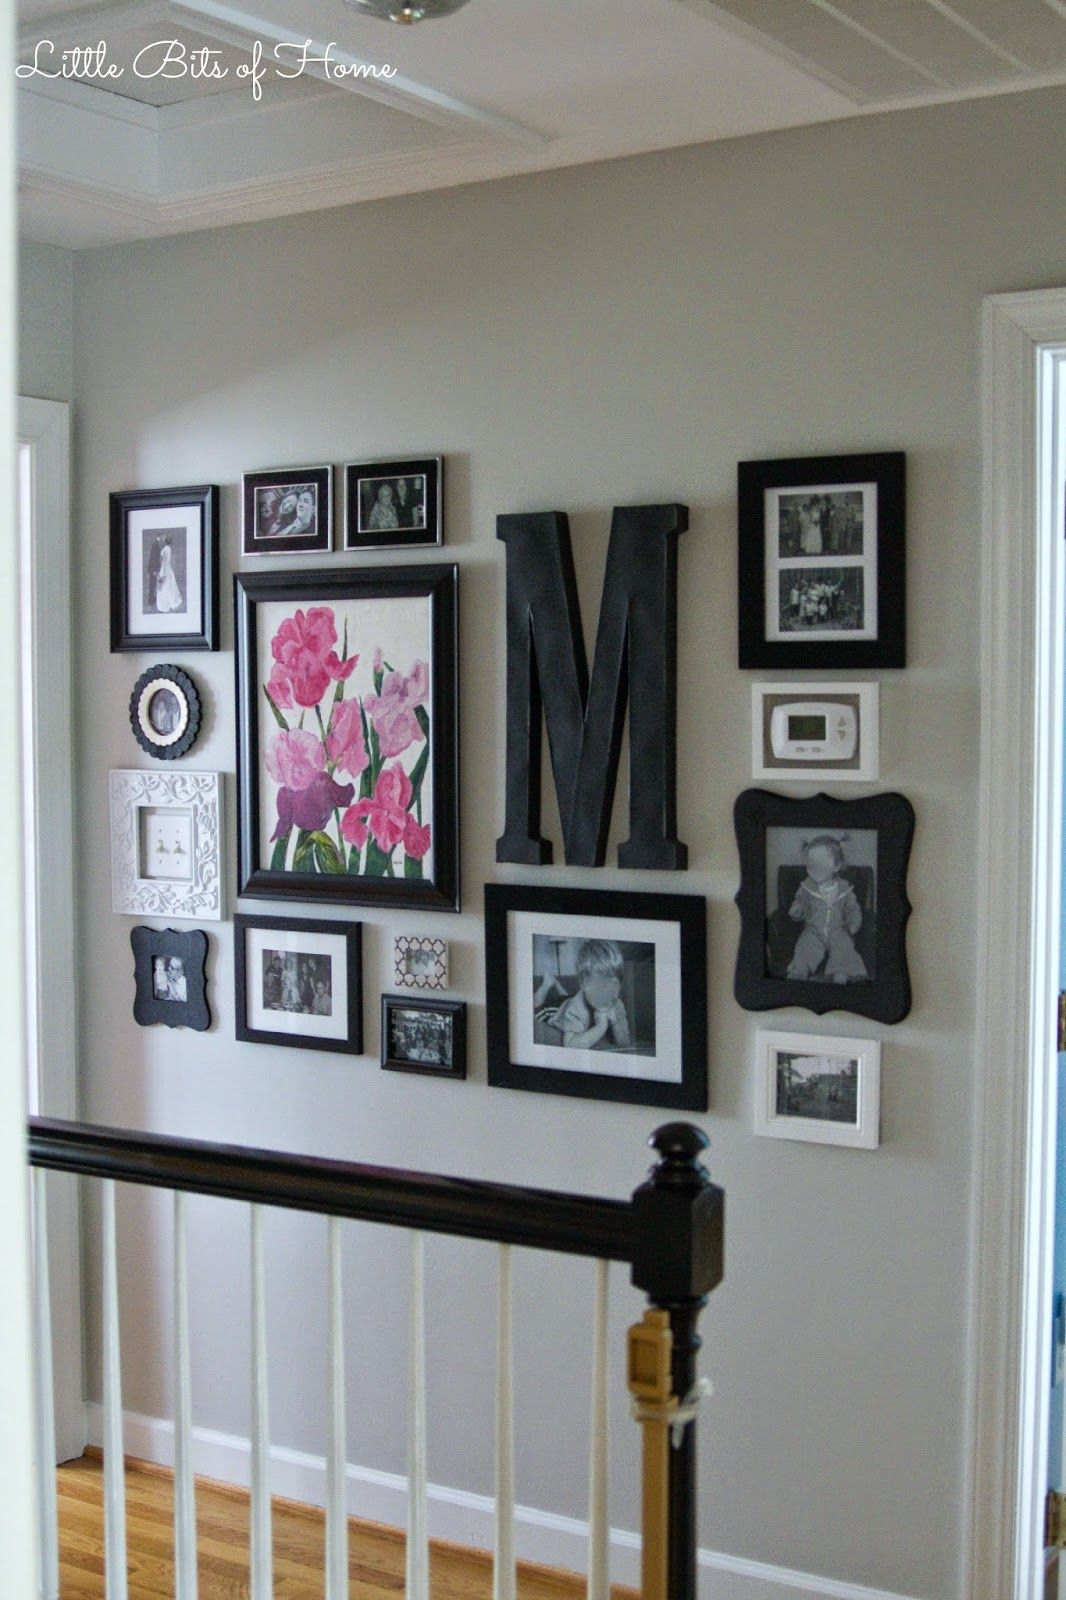 Little bits of home hallway gallery wall living room picture ideas decorating for also inspiration above our couch or in the stairwell dream  rh pinterest